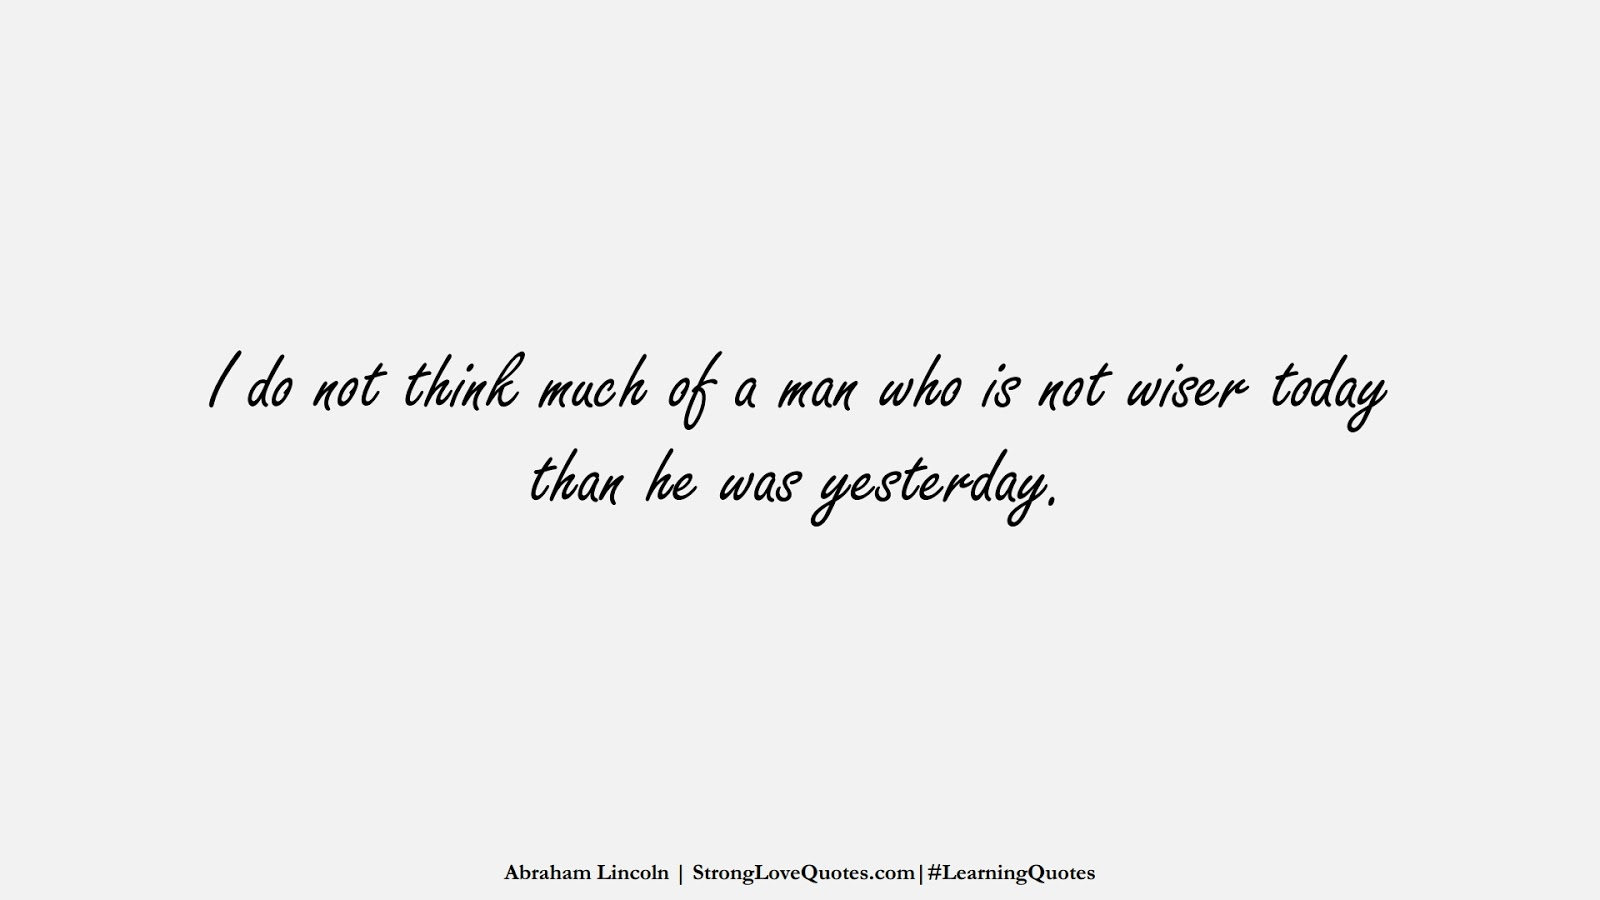 I do not think much of a man who is not wiser today than he was yesterday. (Abraham Lincoln);  #LearningQuotes